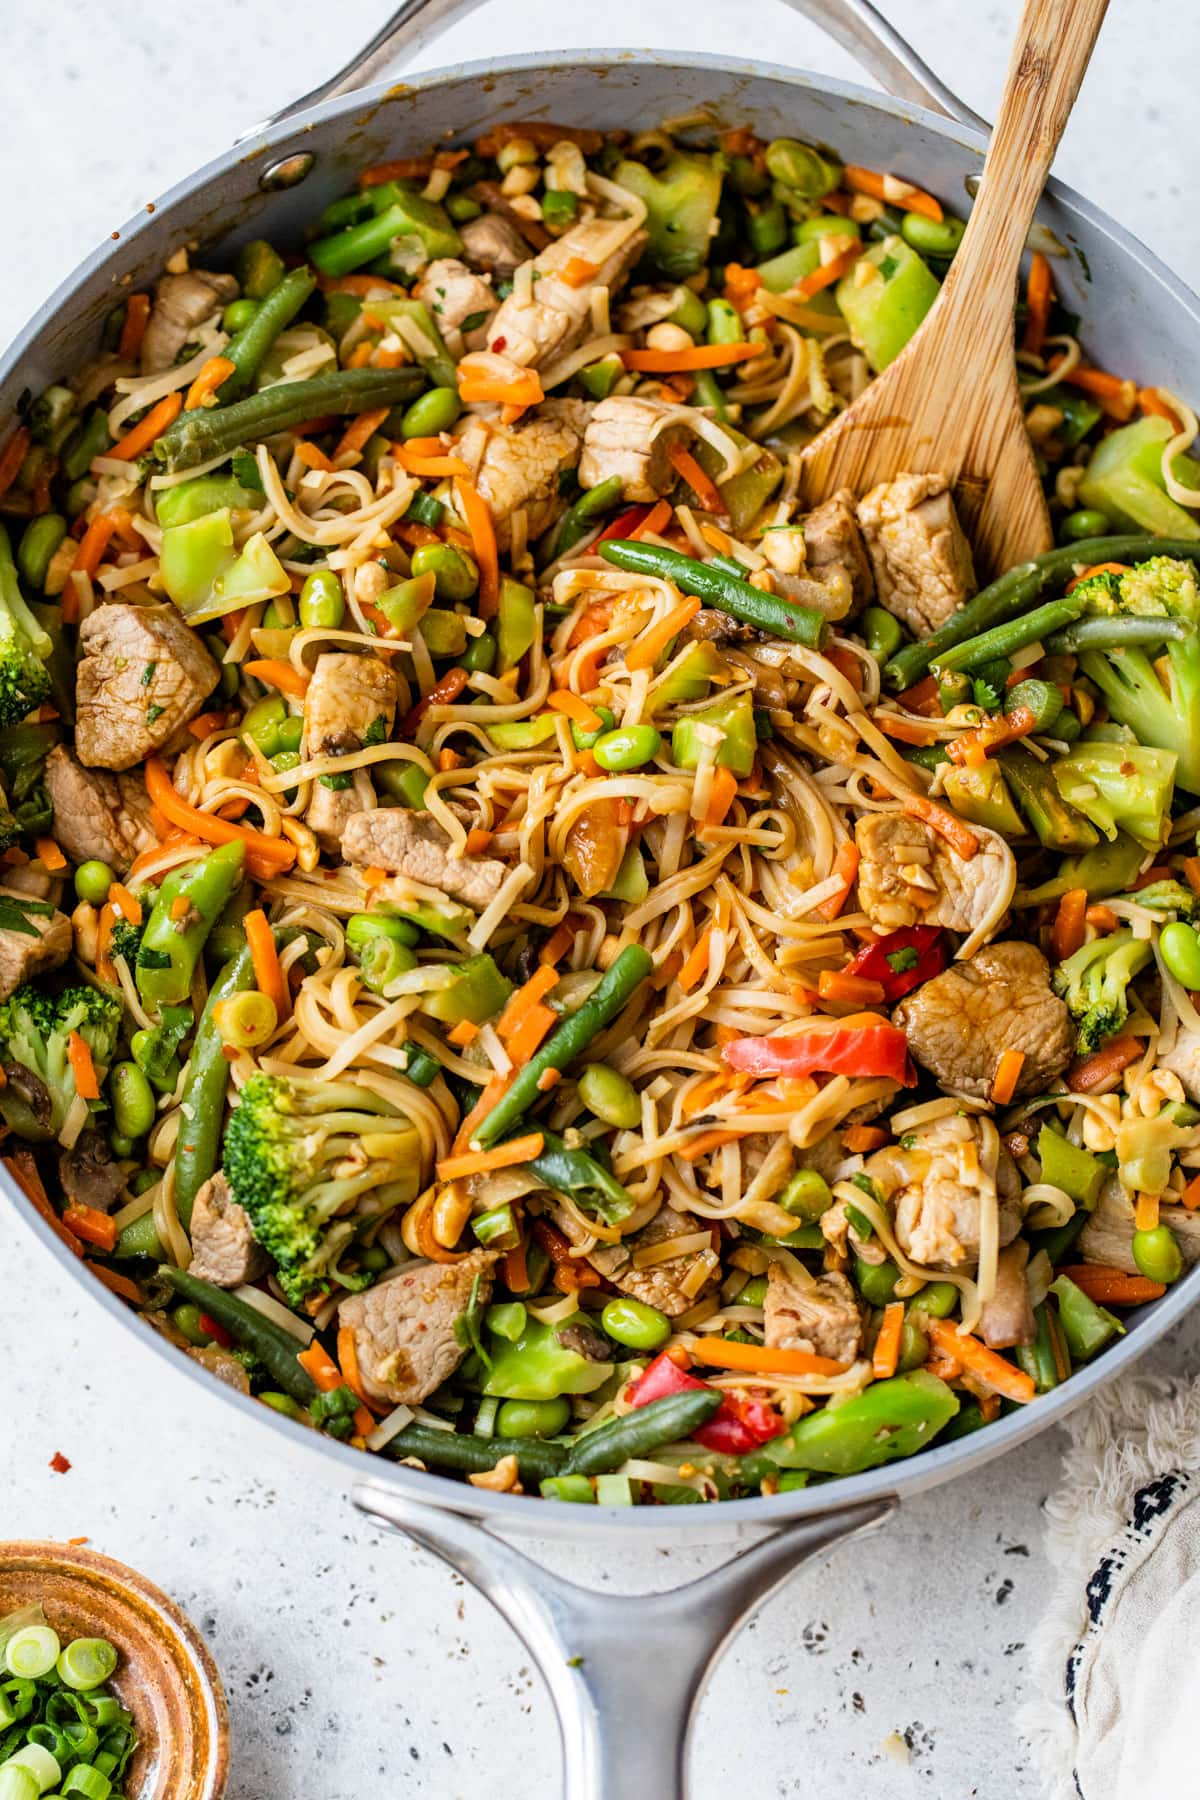 Slow Cooker Pork Stir Fry with Peanut Noodles